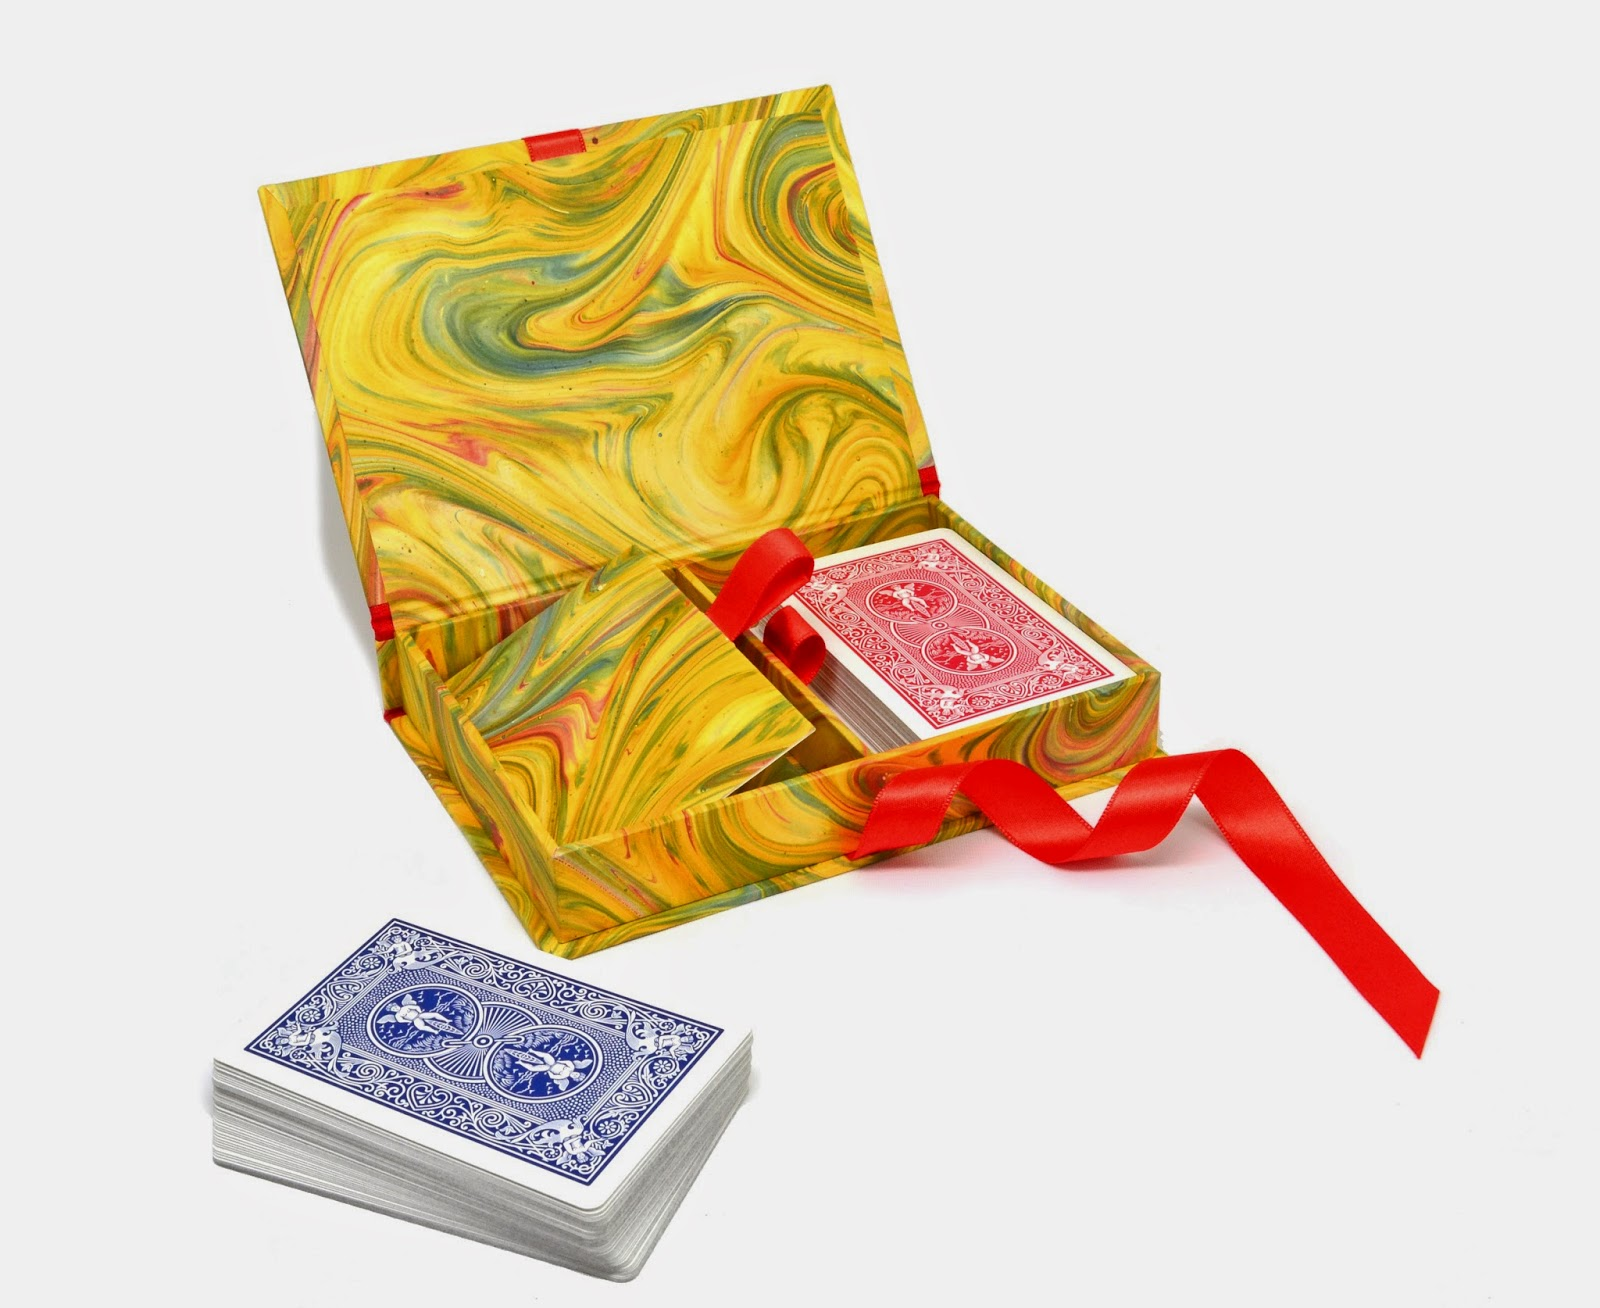 Parvum Opus provides custom made to order boxed playing card sets